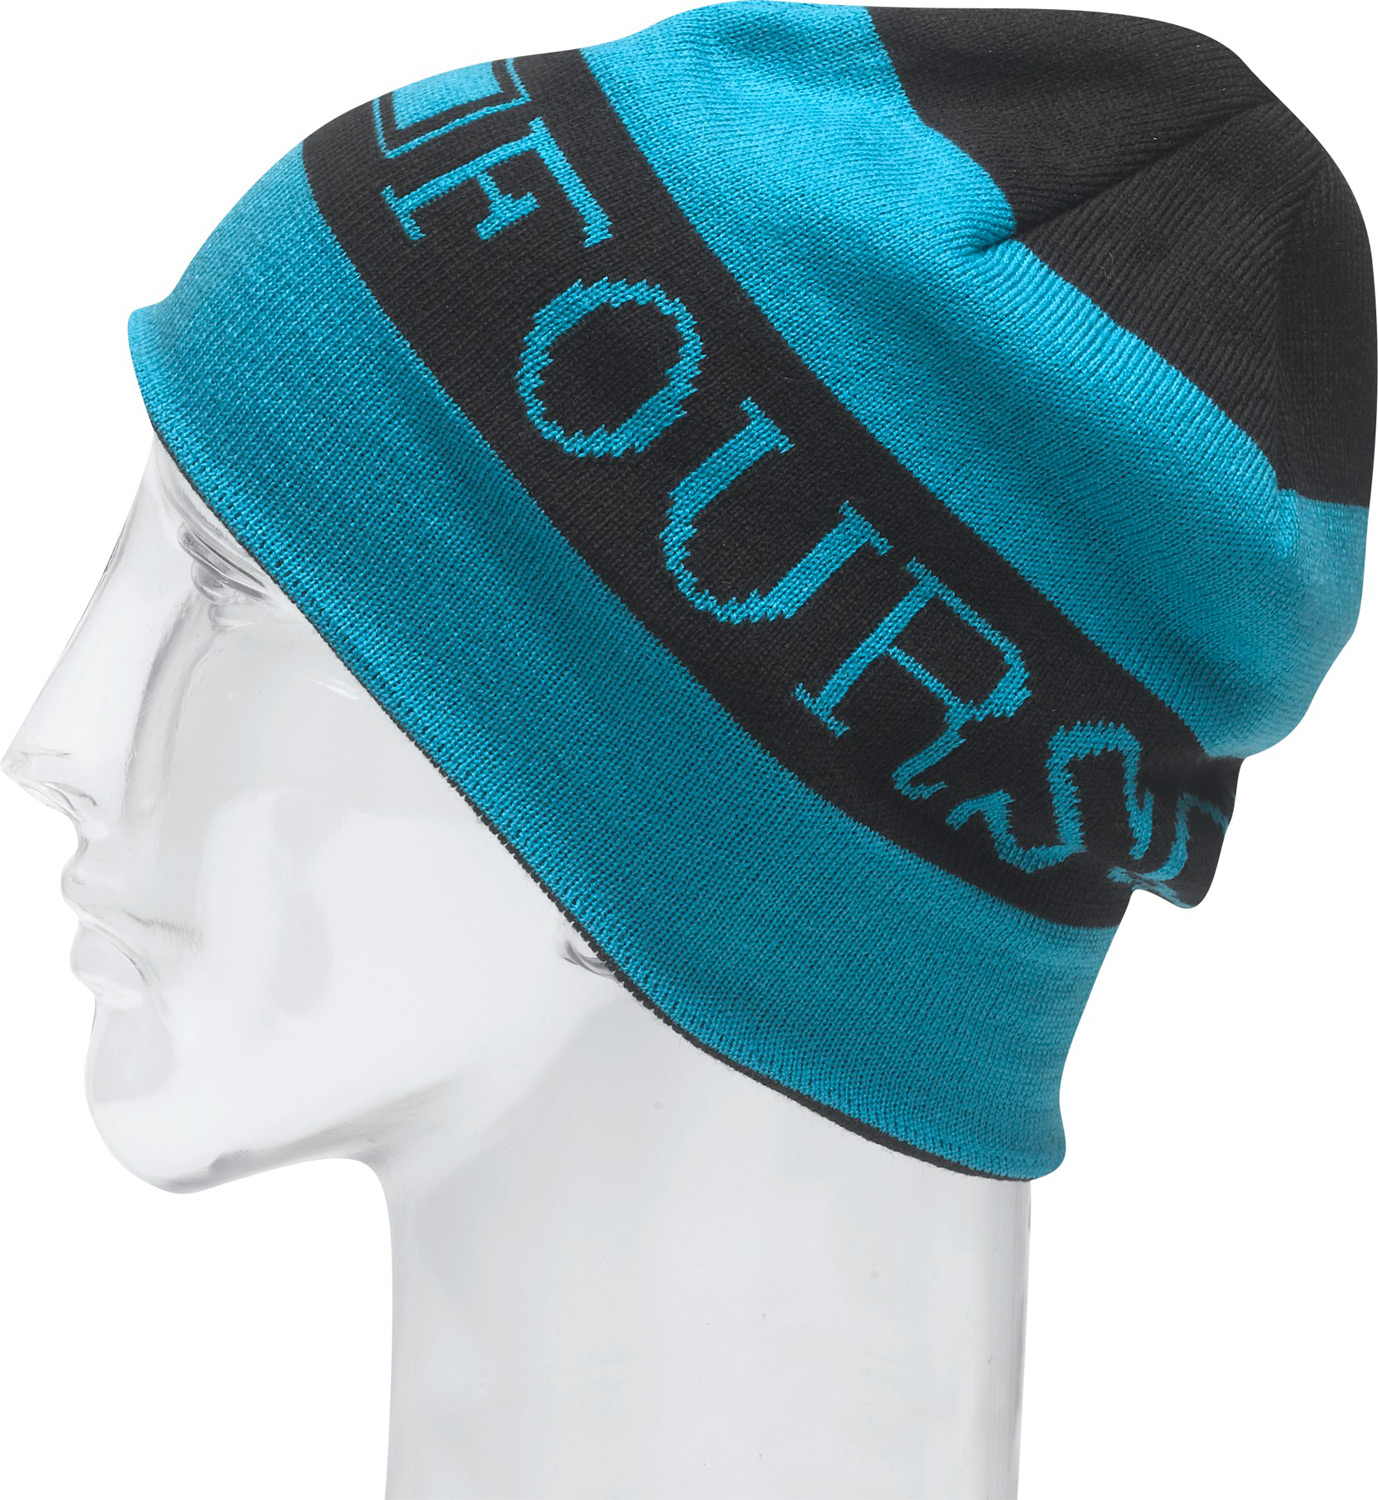 Snowboard Key Features of the Foursquare Scroll Beanie: 100% Acrylic Machine Knit Intarsia Skully Beanie - $19.99